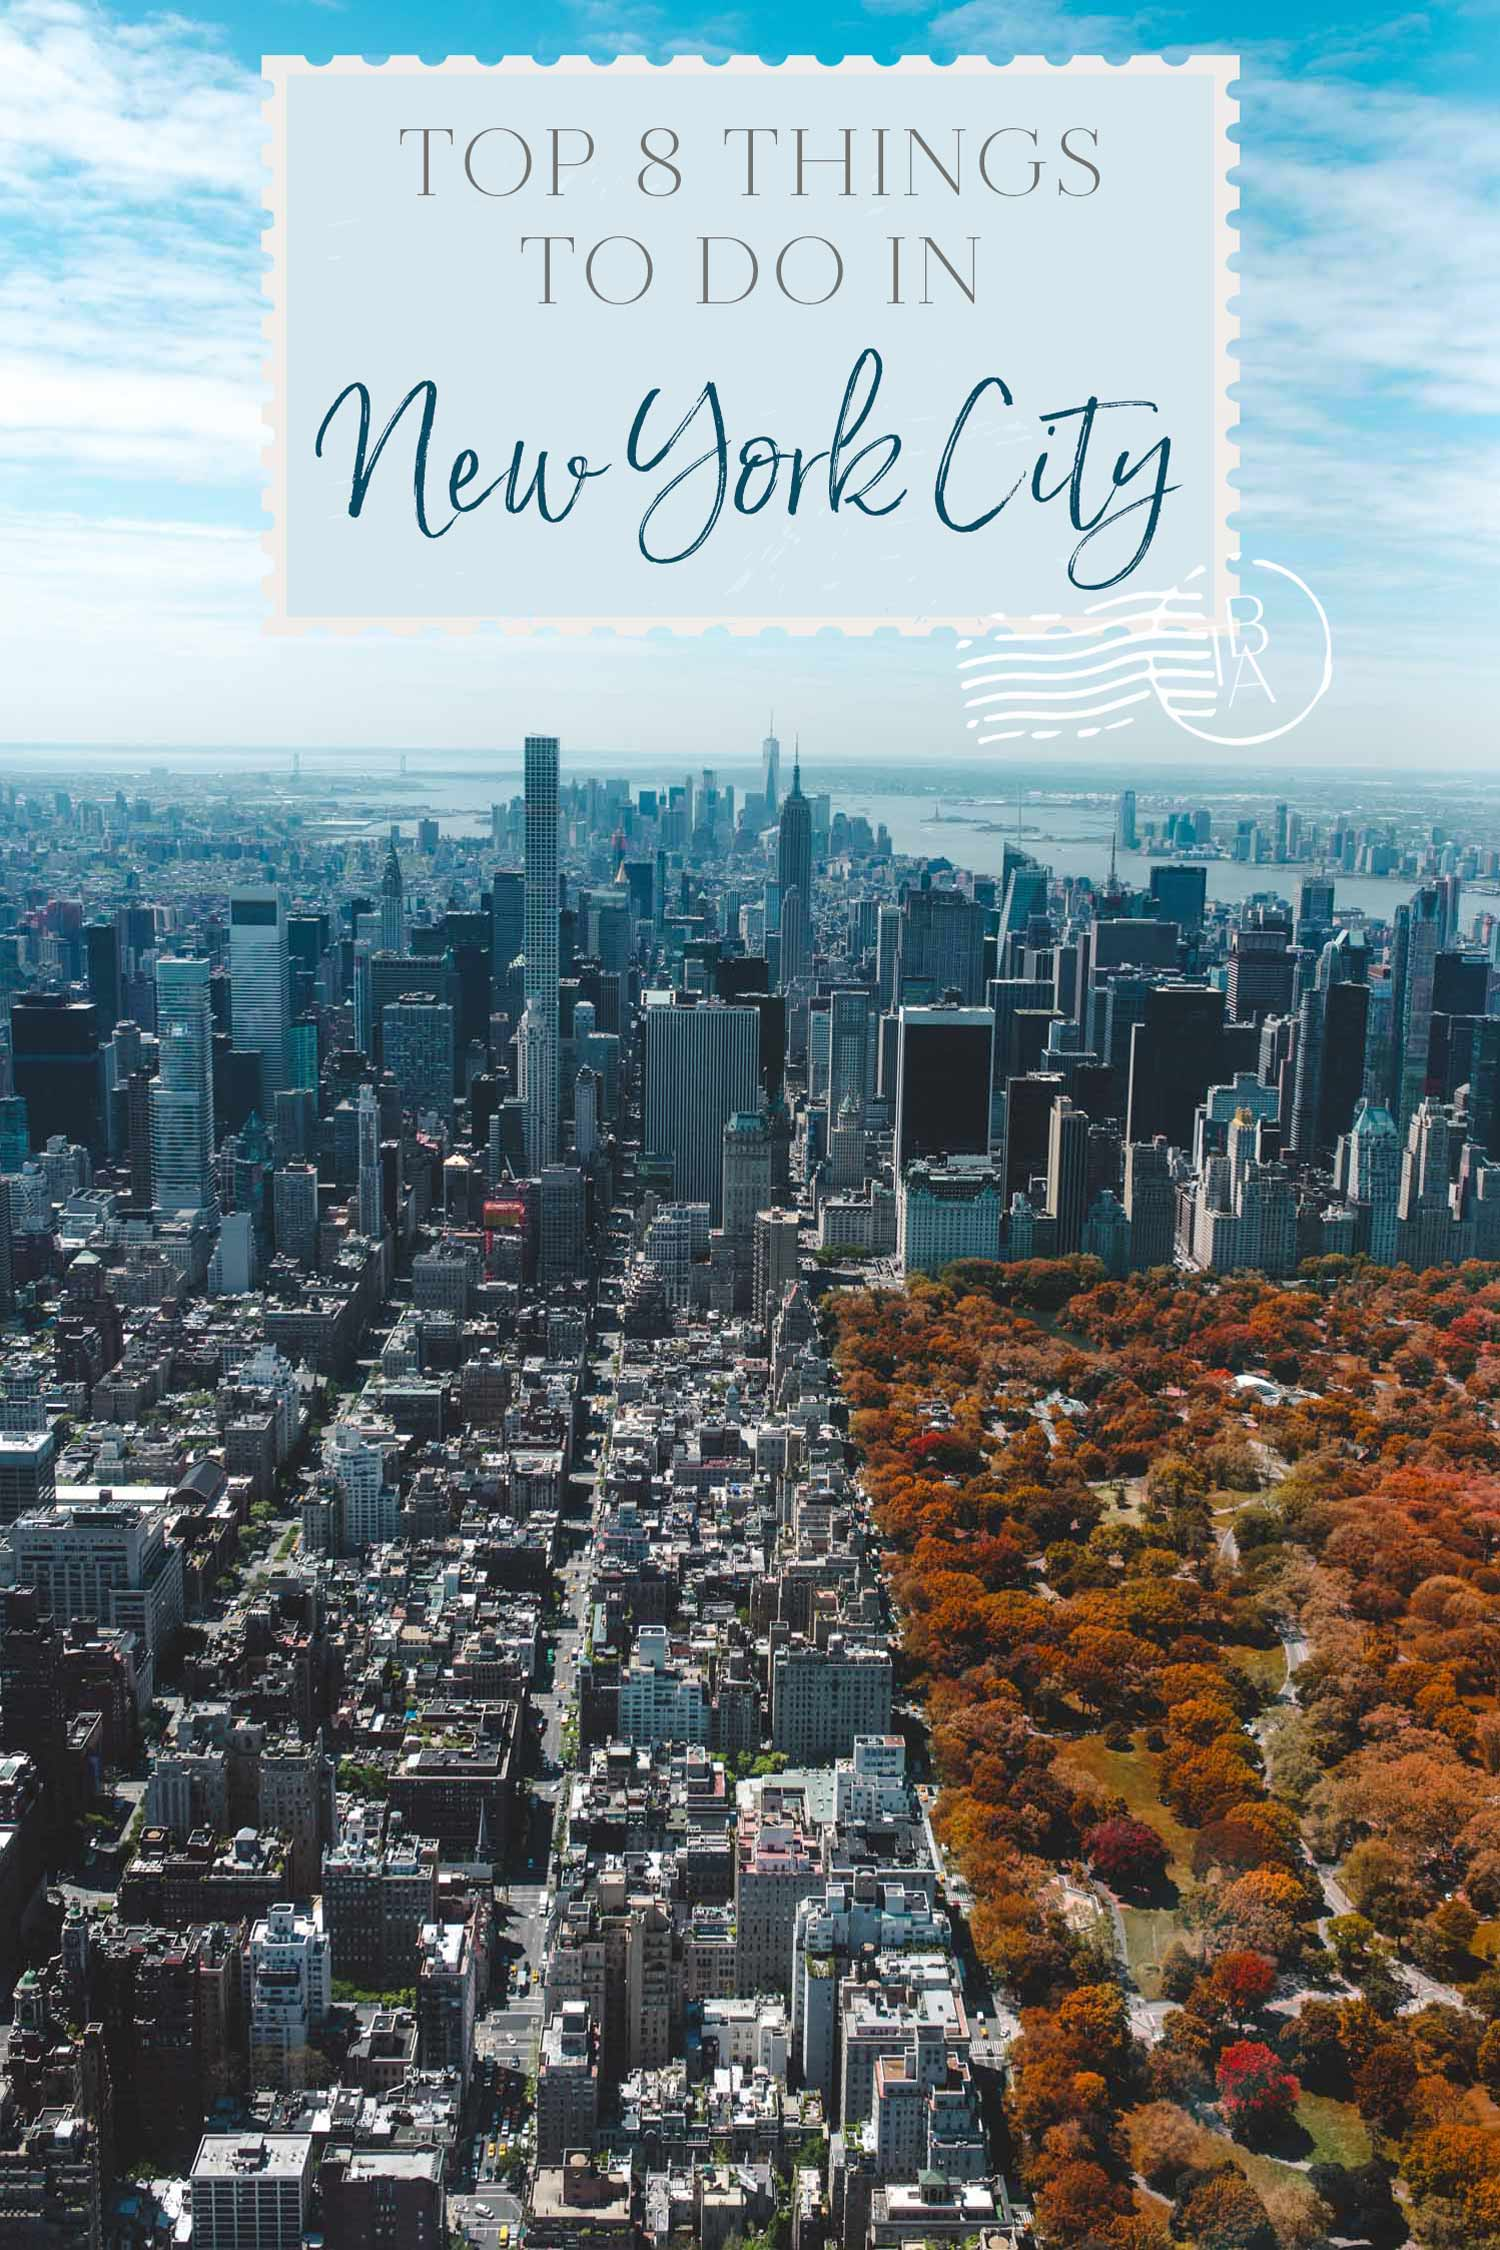 Top 8 things to do in New York